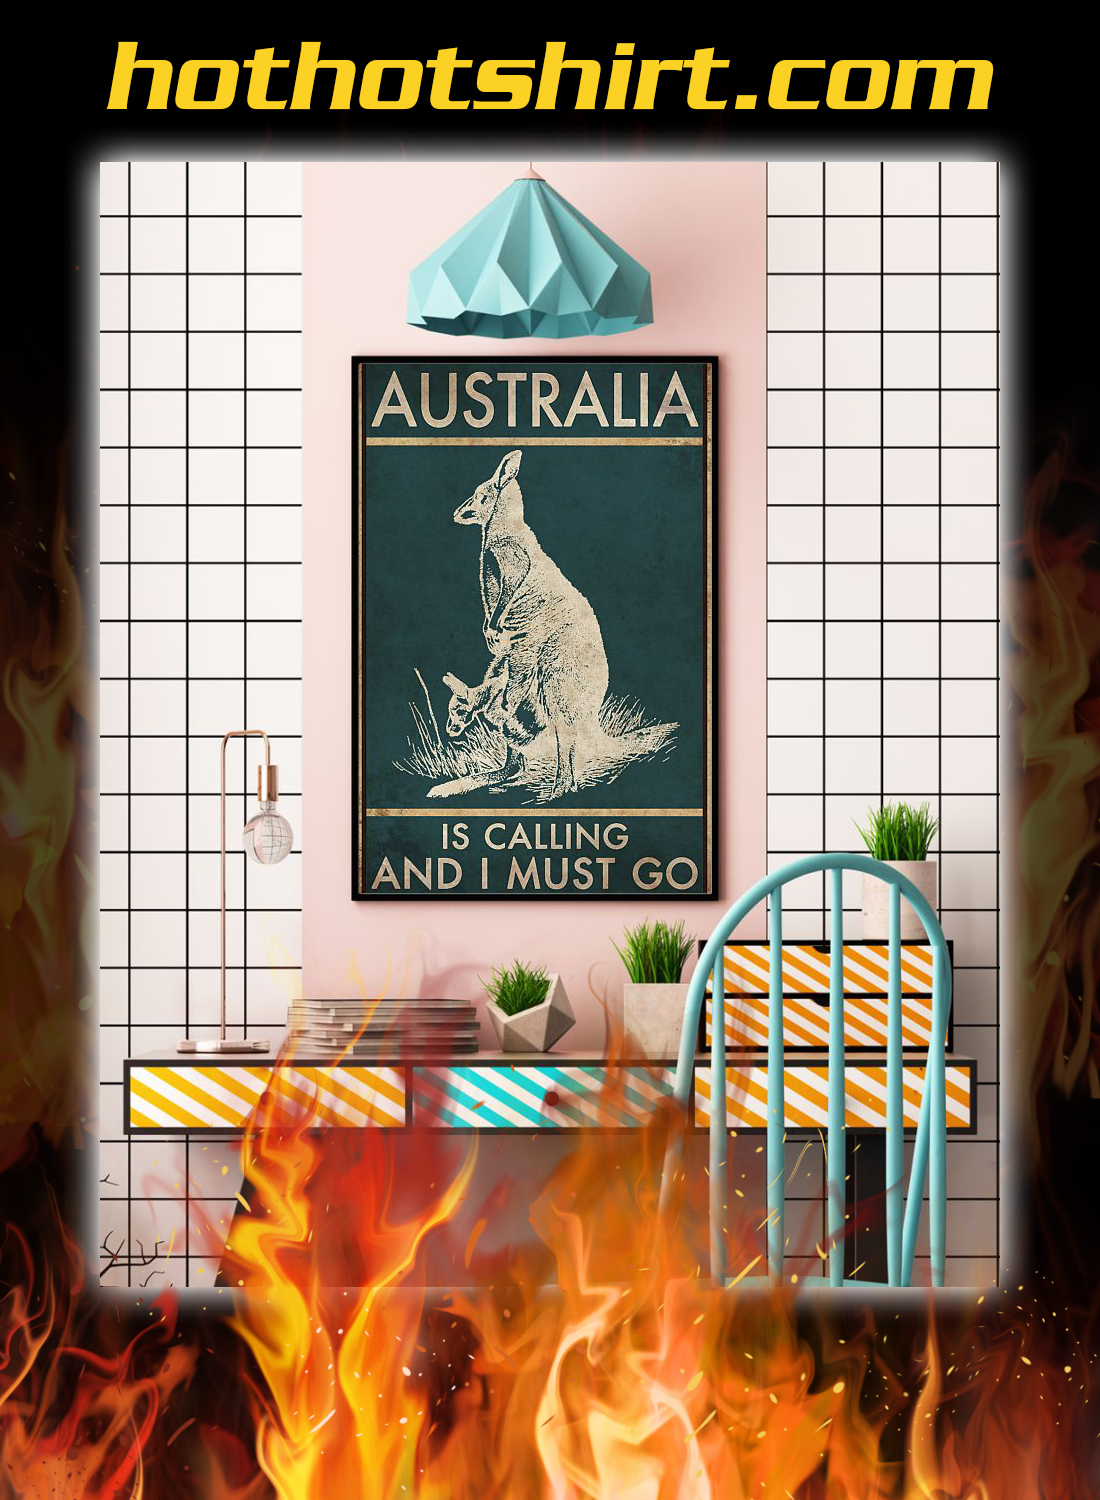 Australia is calling and i must go poster 2